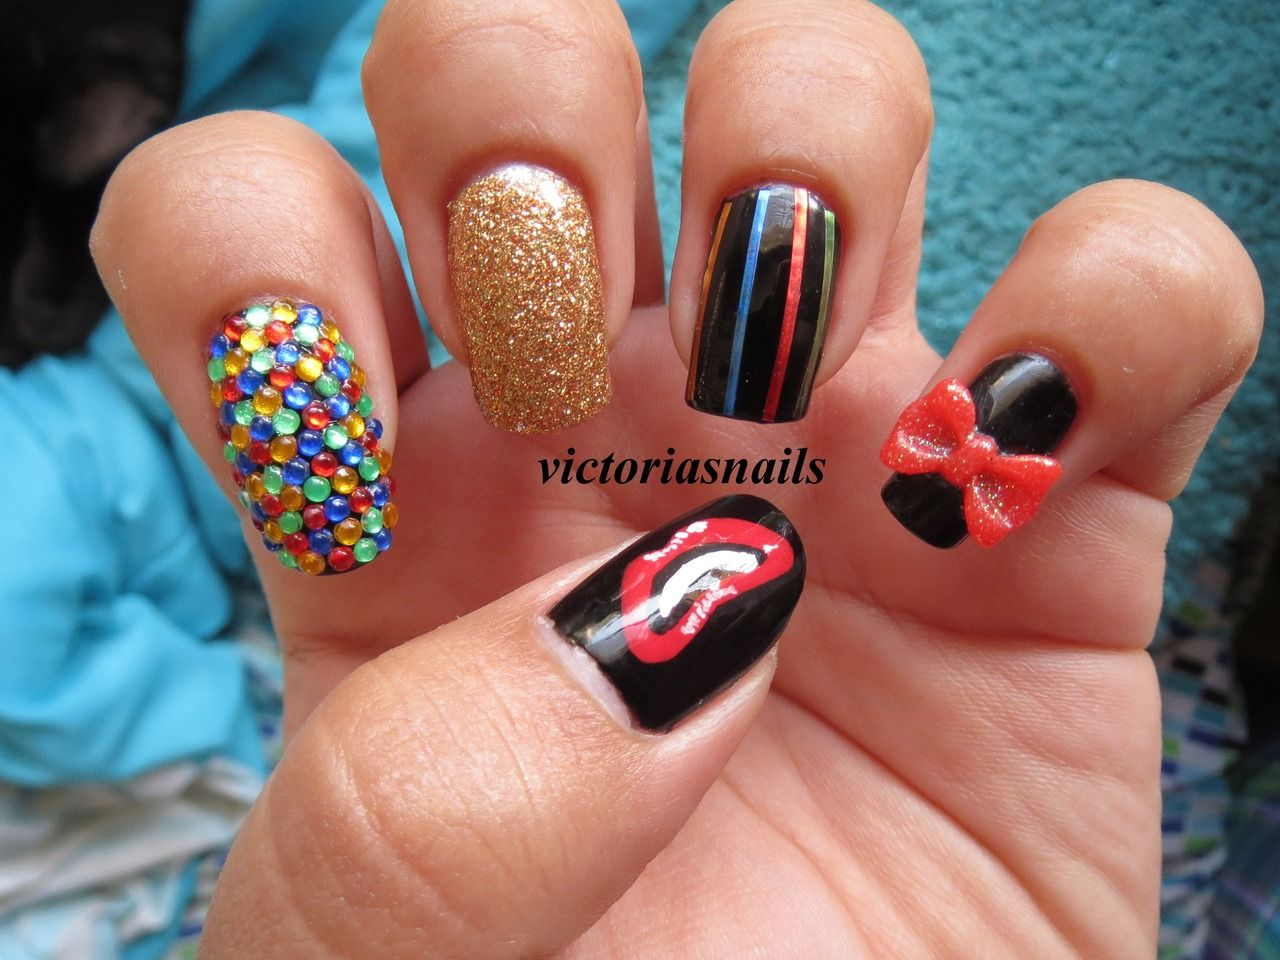 Nail art inspired by columbia from the rocky horror picture show nail art inspired by columbia from the rocky horror picture show did these last halloween prinsesfo Choice Image